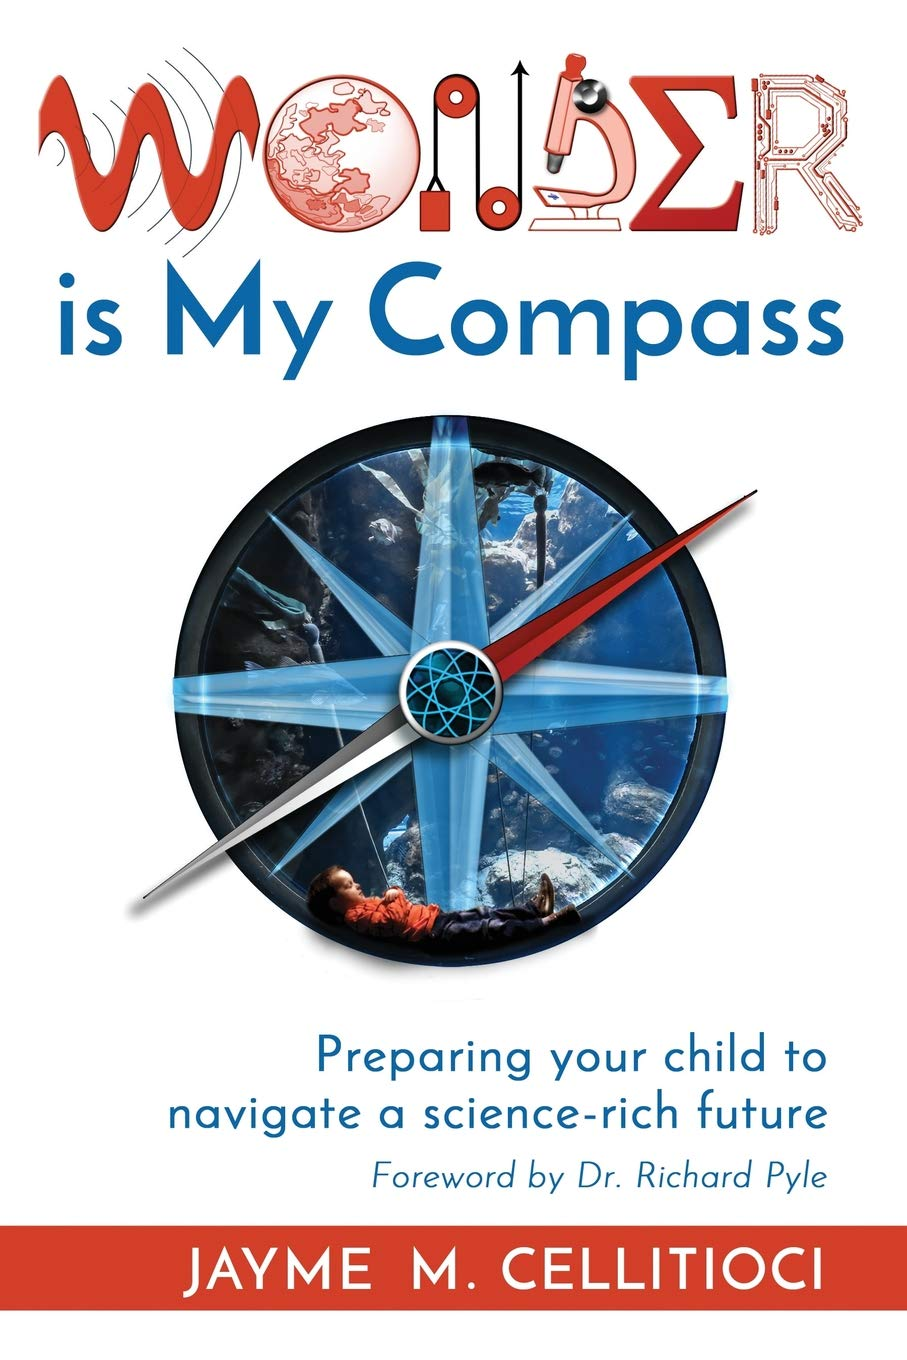 e58a7689a Wonder is My Compass  Preparing your child to navigate a science ...